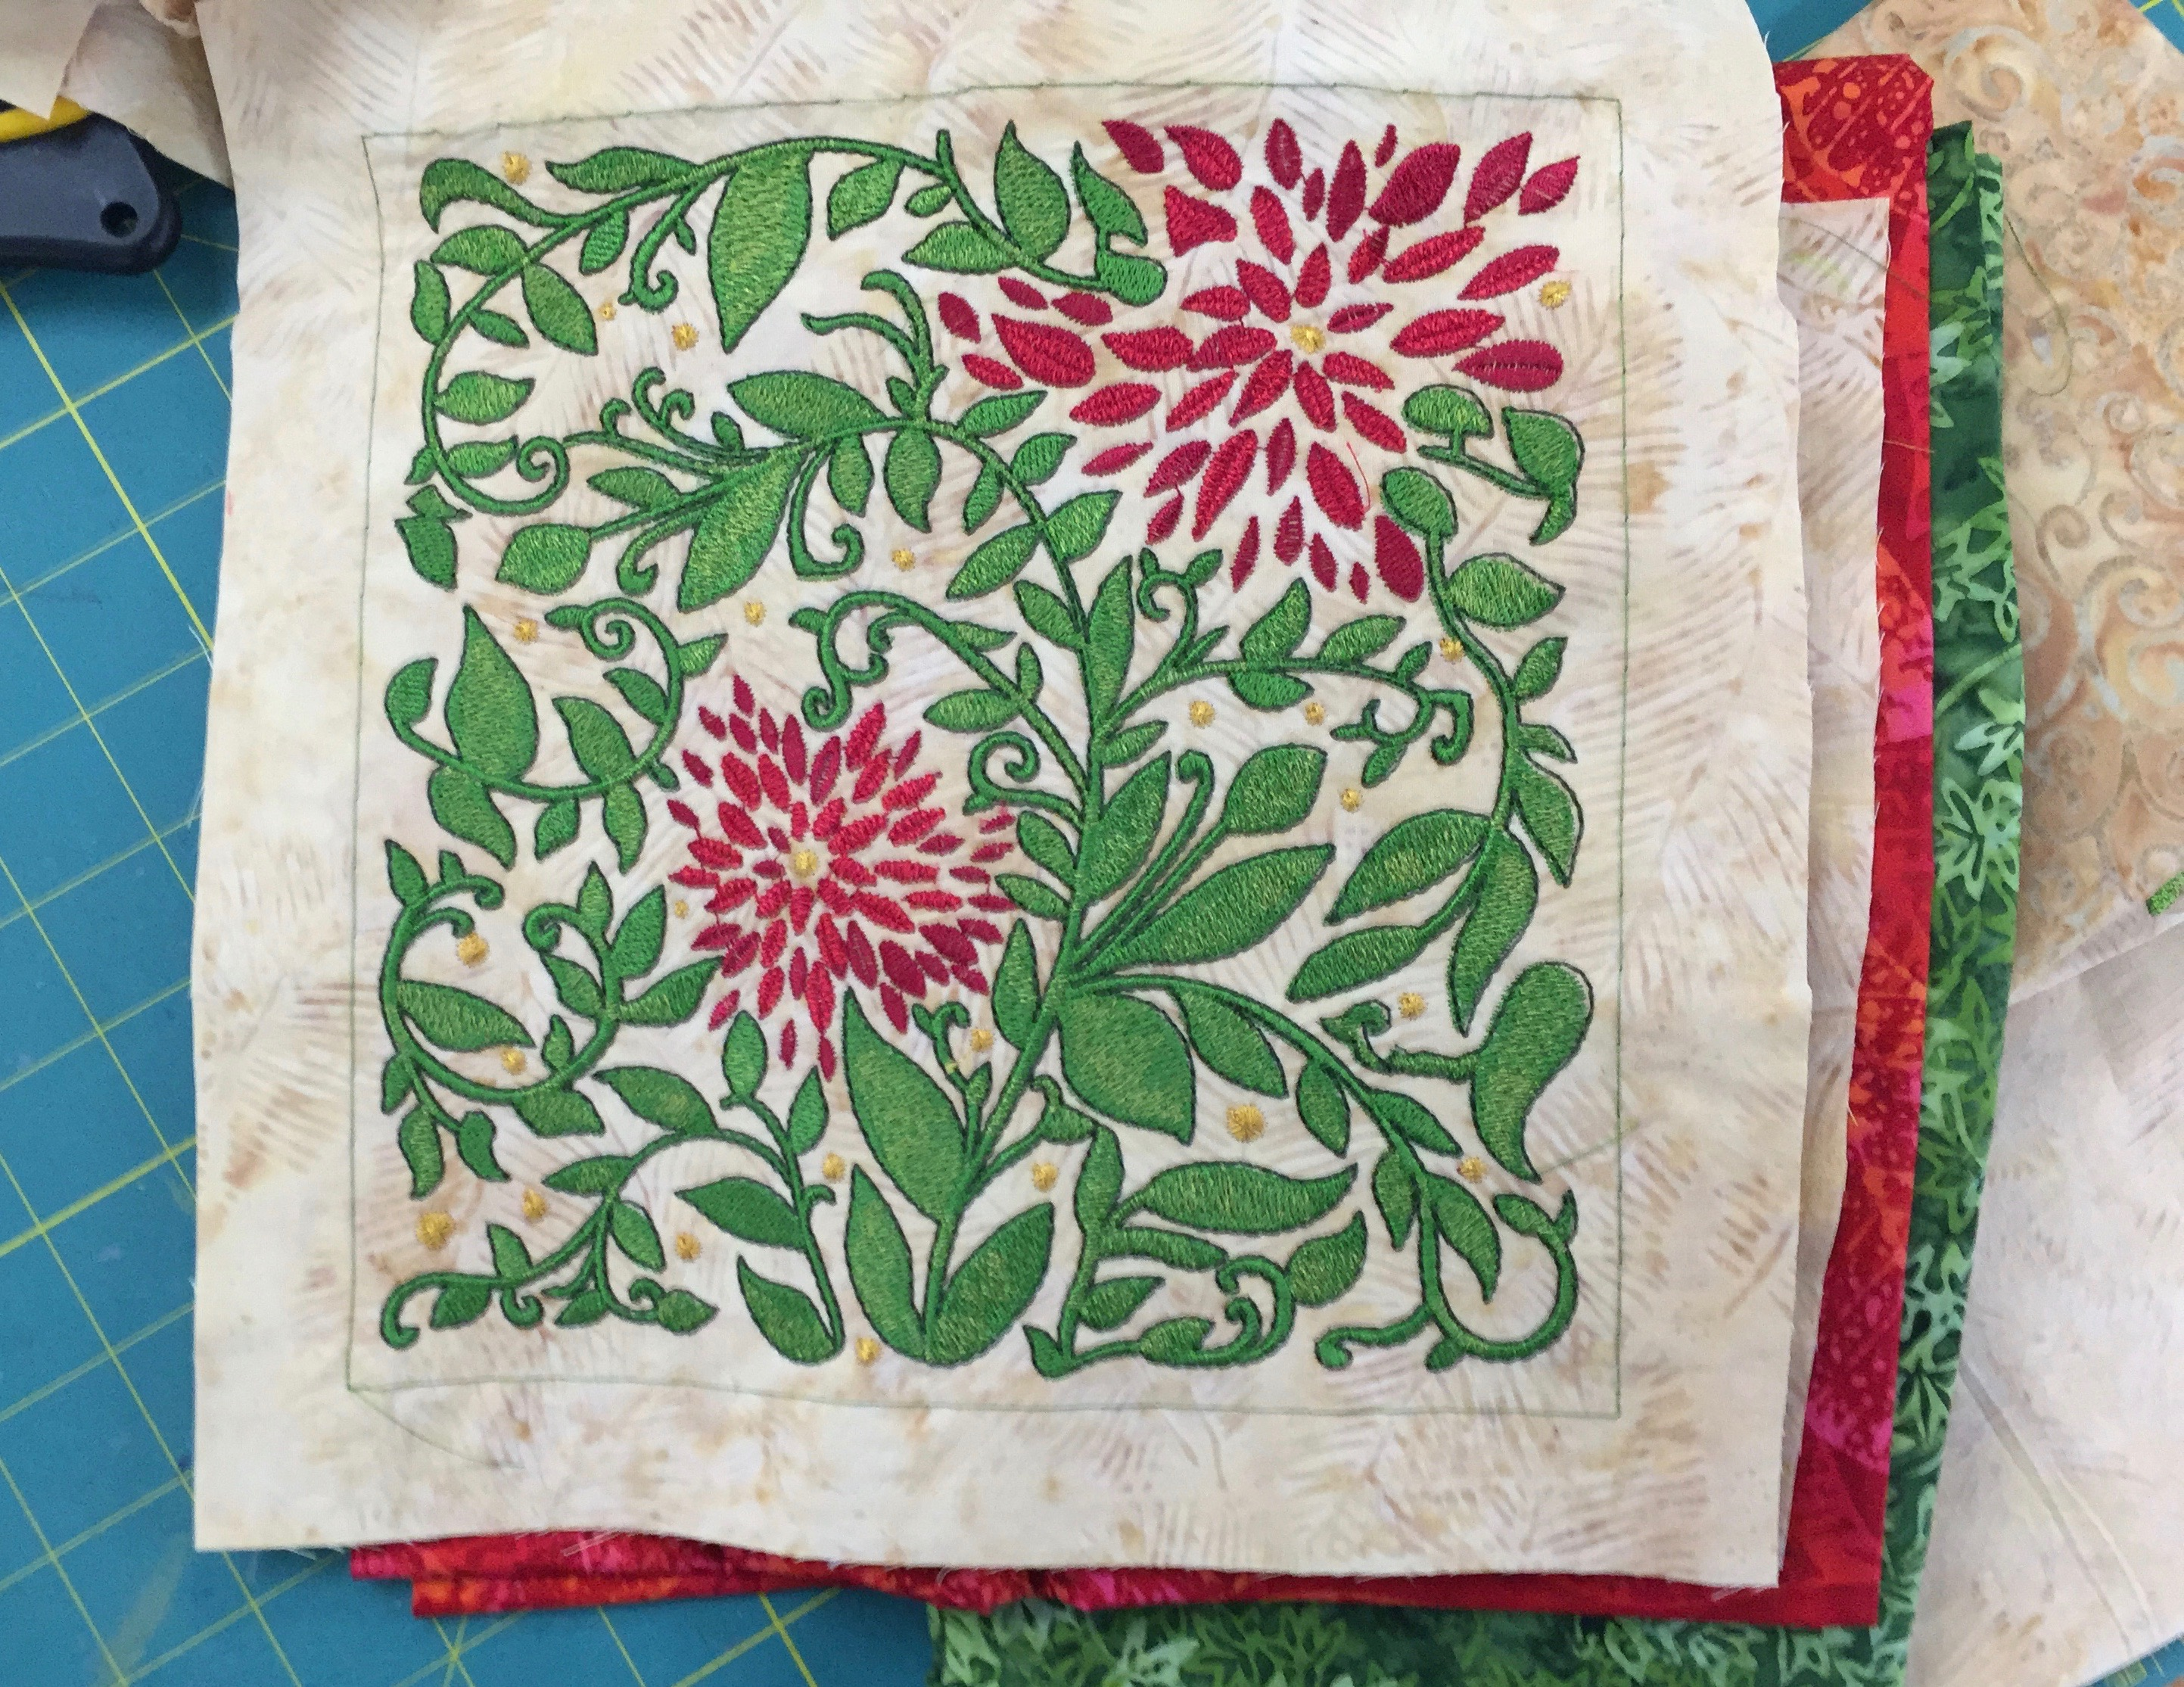 Janome Quilting Embroidery Designs : Art and Quilting in Camden and Hope Blog Archive Lonni Rossi Embroidery design!